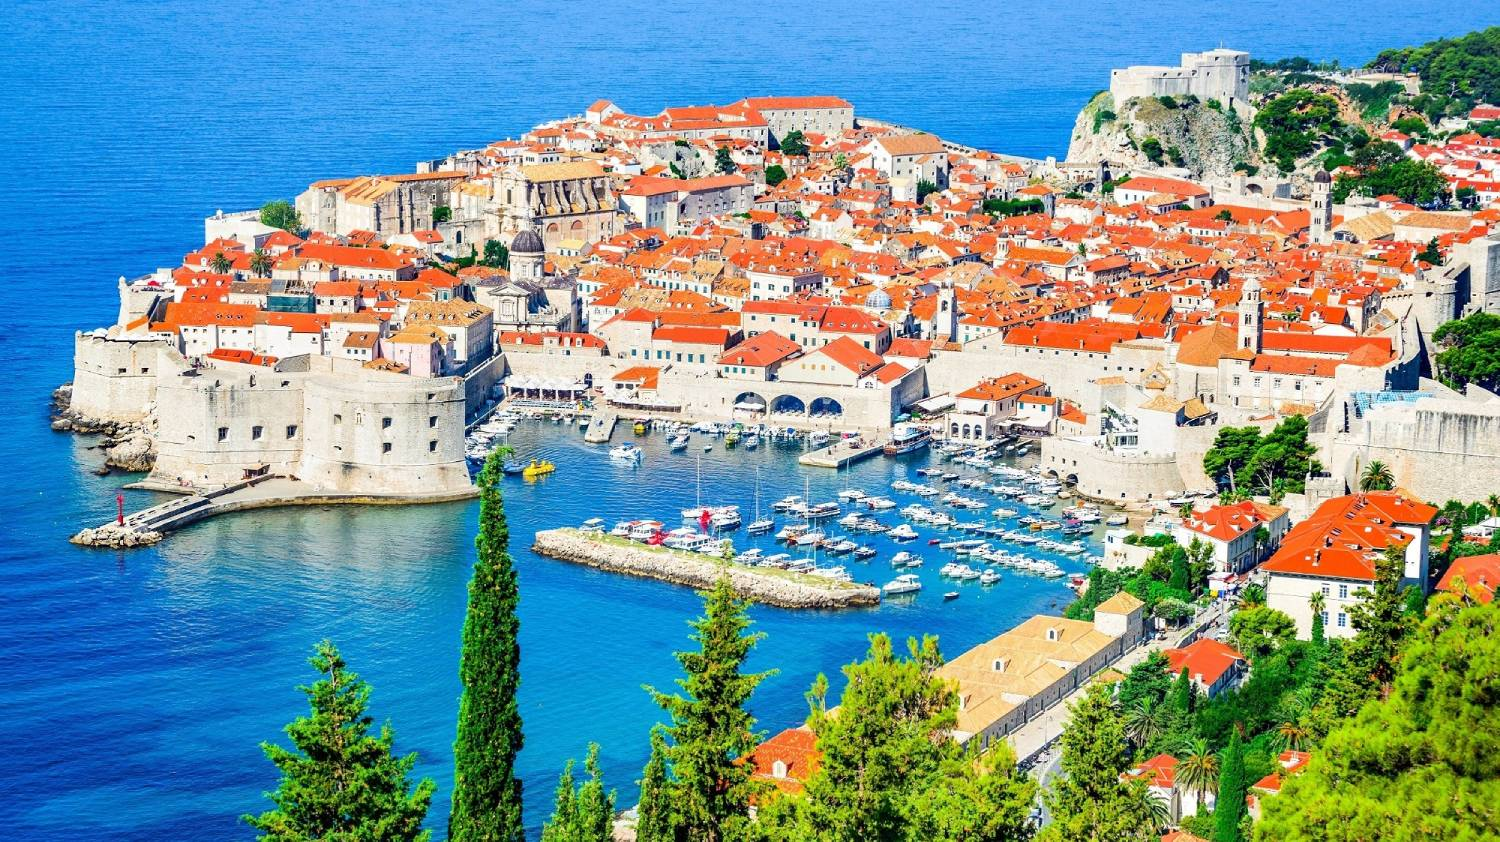 Dubrovnik - The Best Places To Visit In Croatia